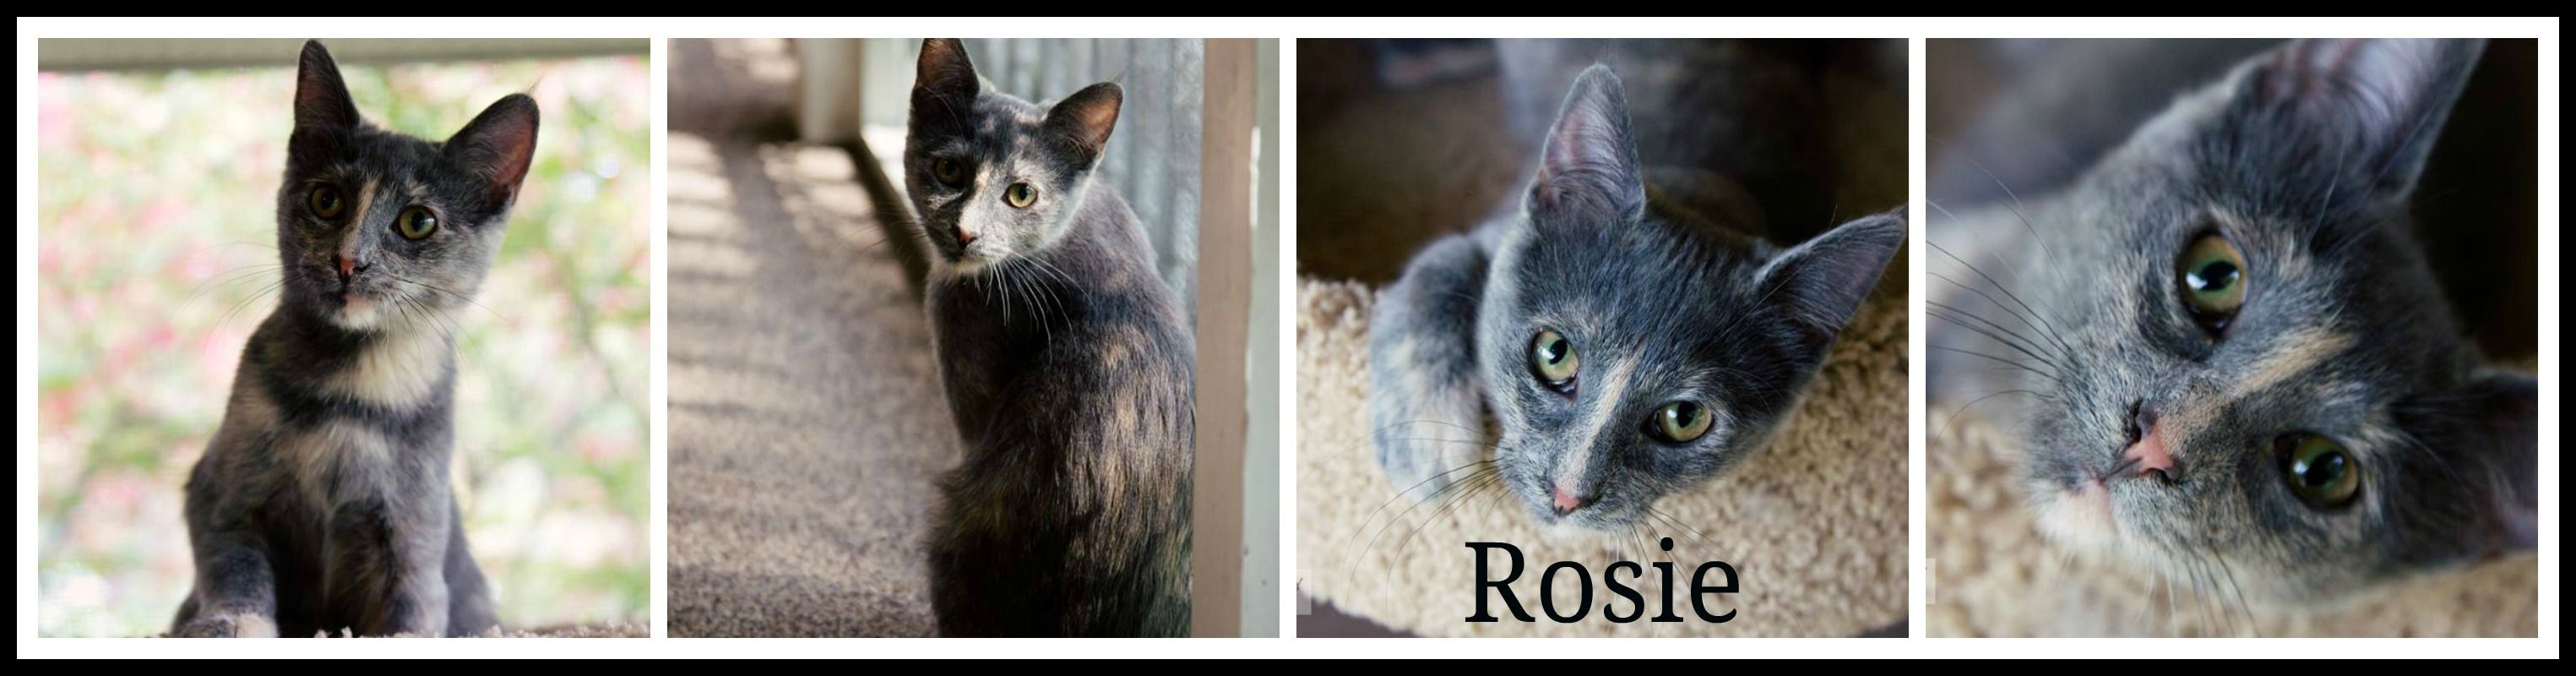 Adopted 10 14 4 Rosie Is A 4 Month Old Kitten That Really Likes People Cats And Dogs She Has A Lot Of Cuteness And Really W 4 Month Old Kitten Pets Kittens